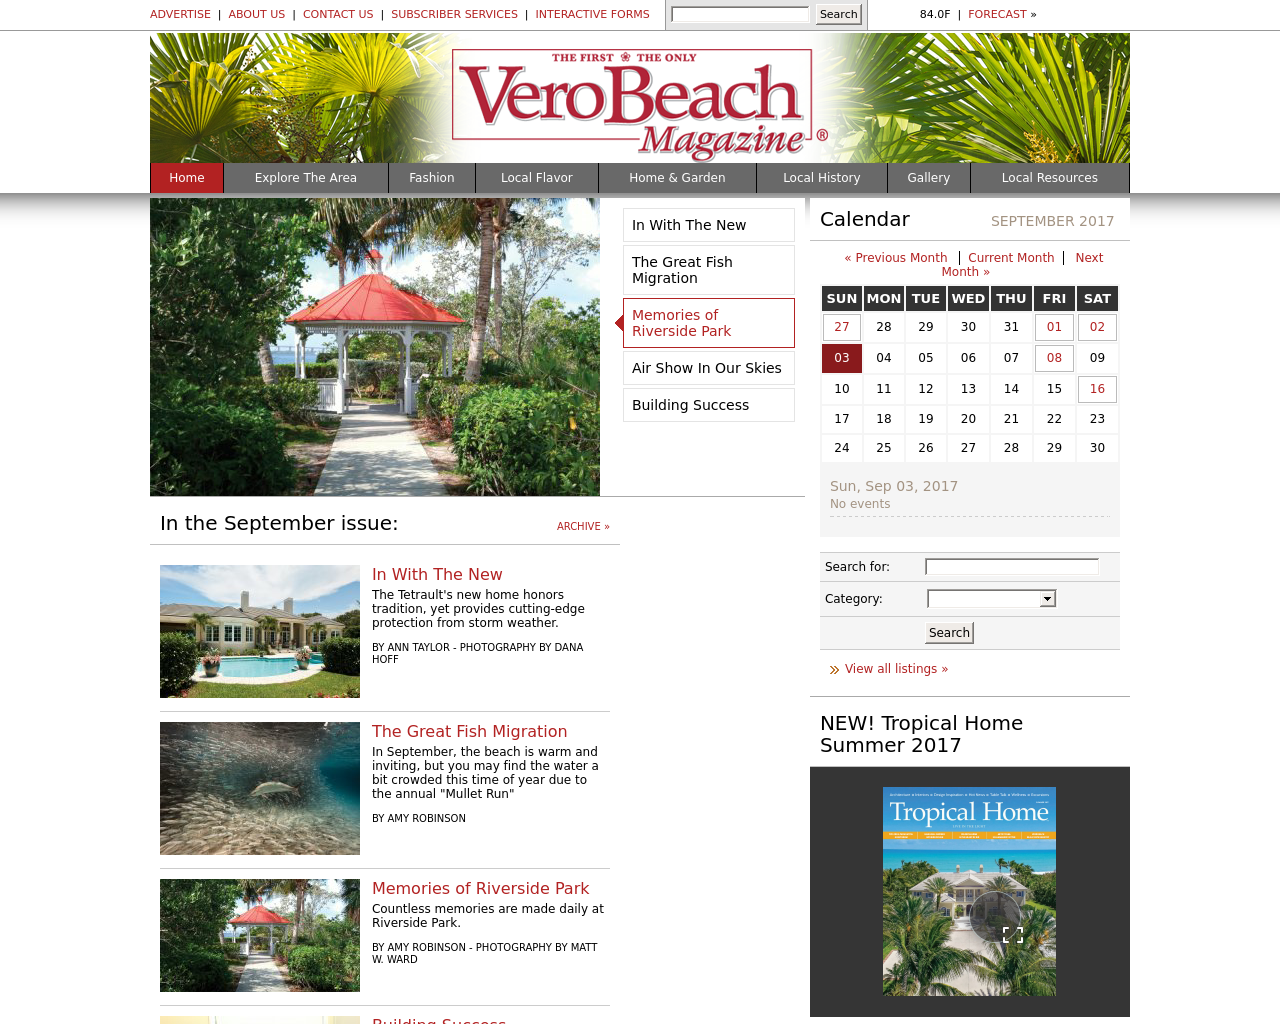 Vero-Beach-Magazine-Advertising-Reviews-Pricing